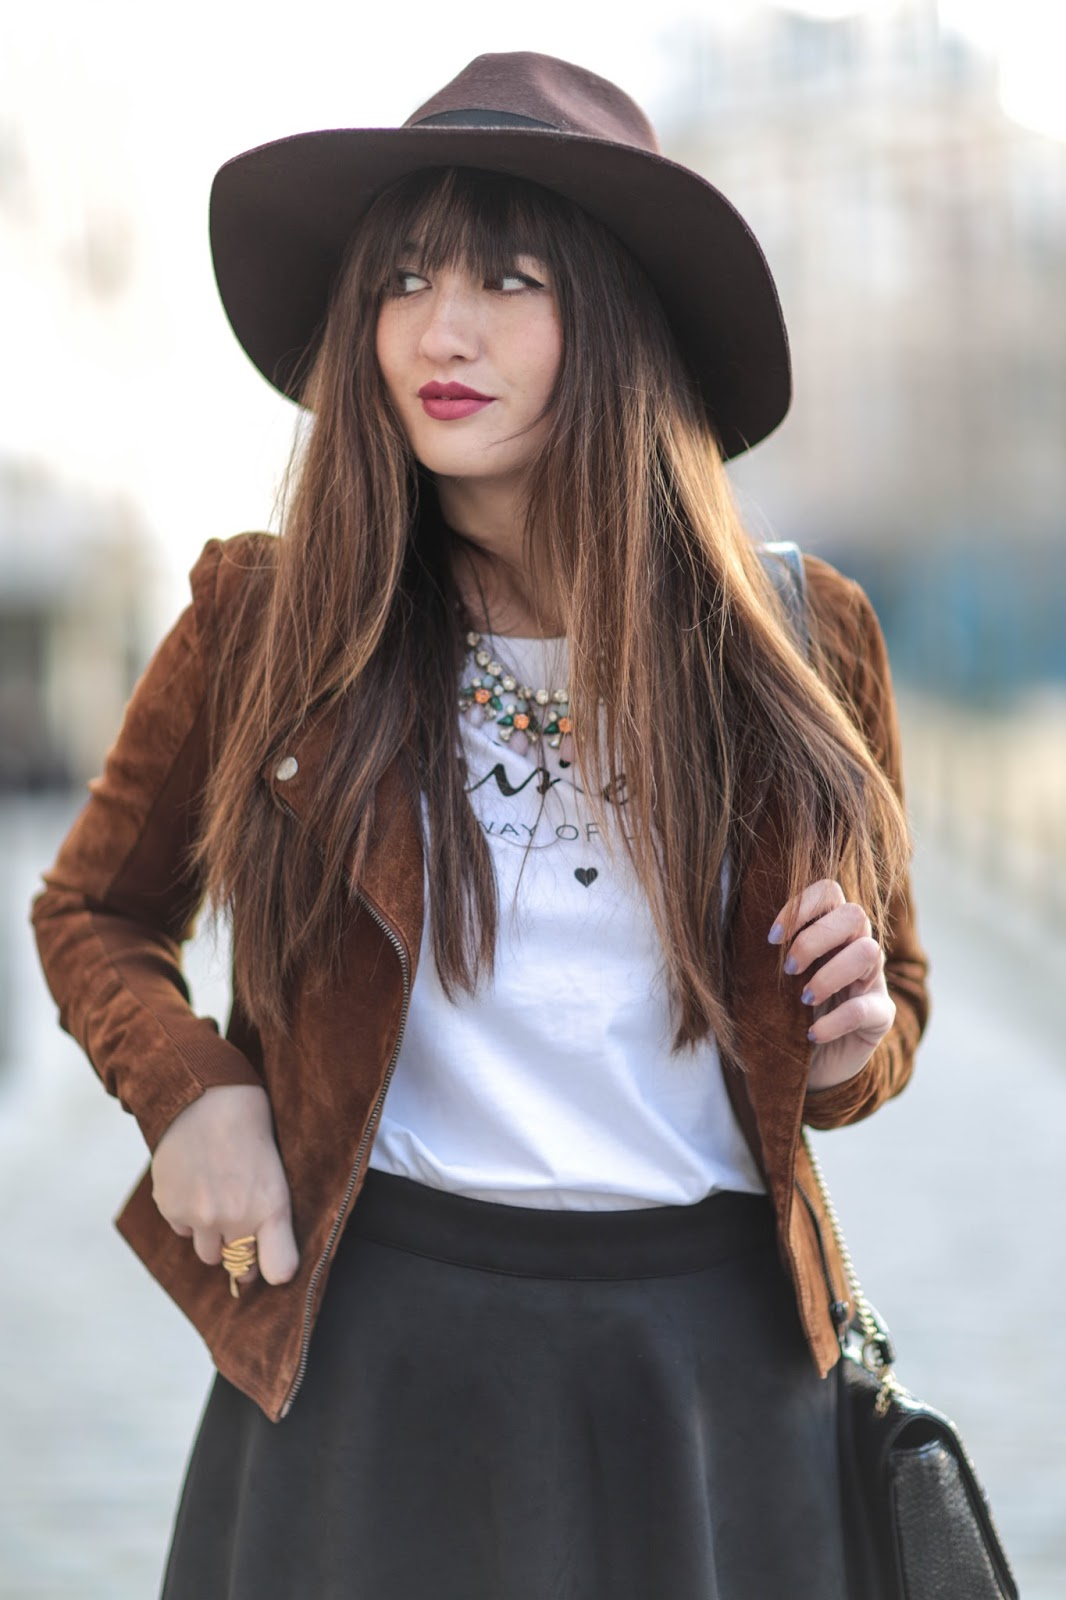 meet me in paree, blogger, fashion, look, style, chic style, boho look